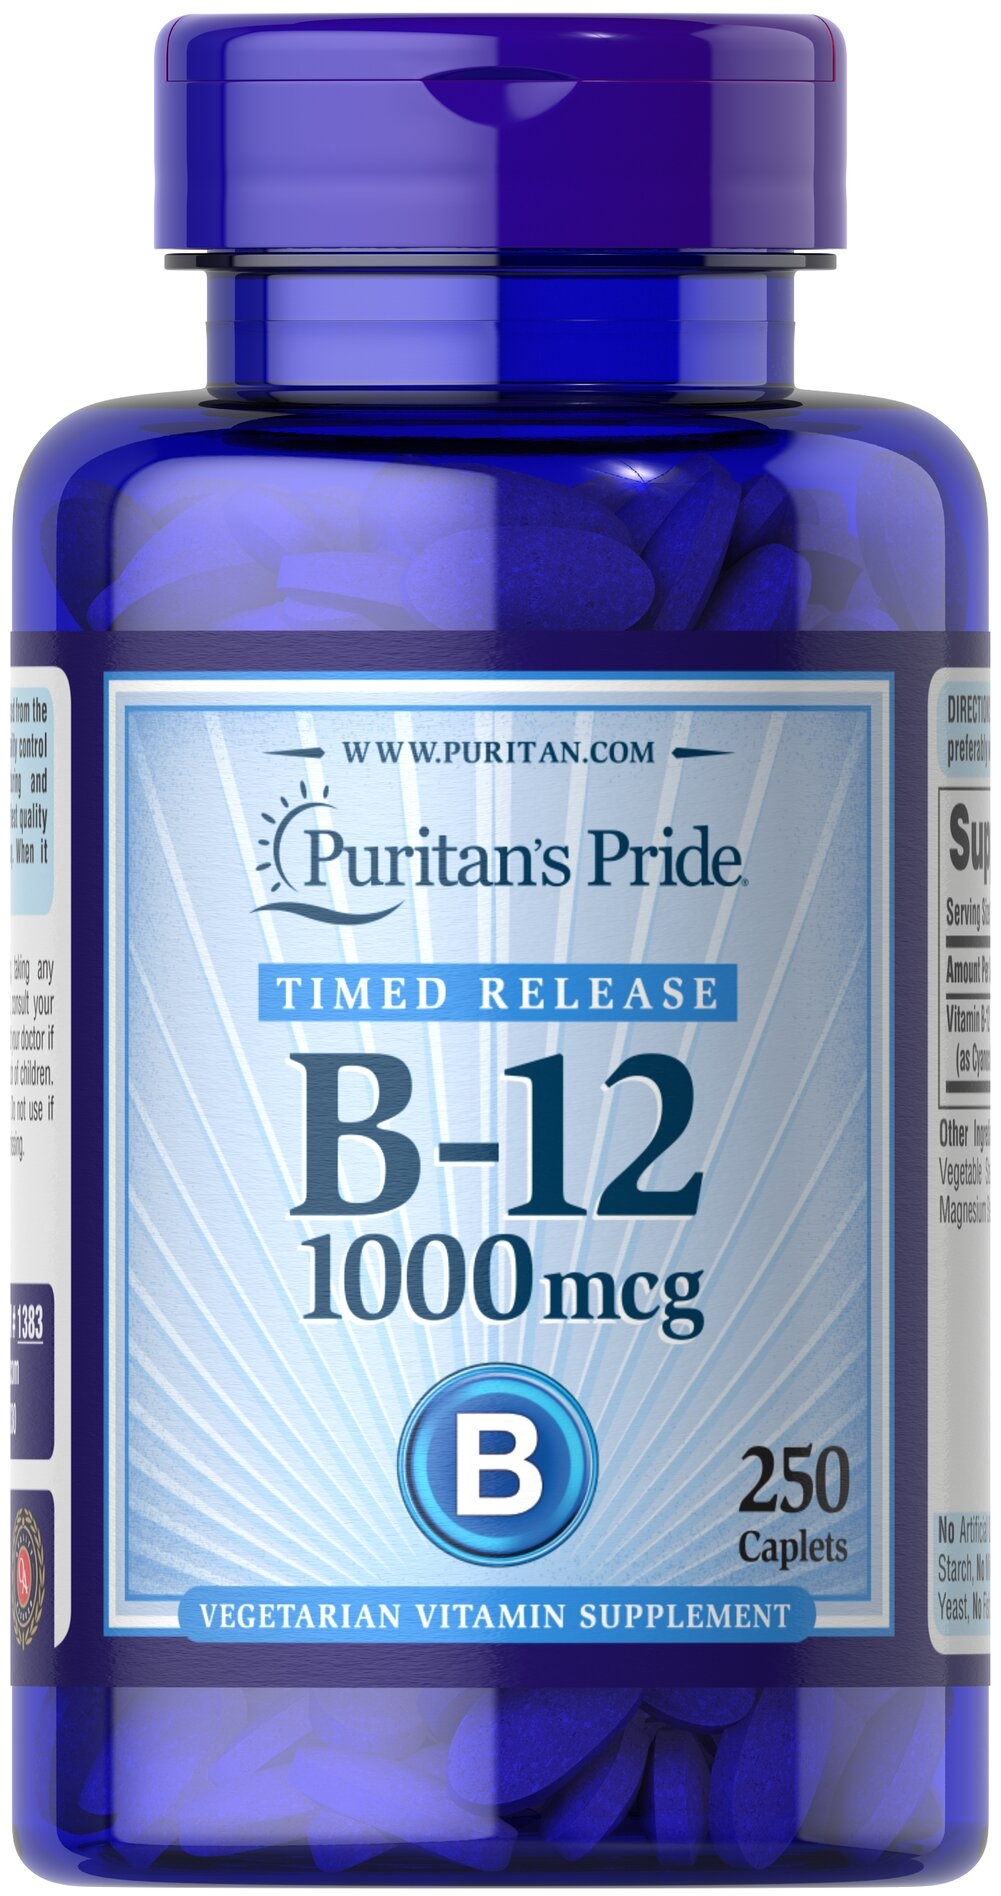 Vitamin B-12 1000 mcg Timed Release Thumbnail Alternate Bottle View